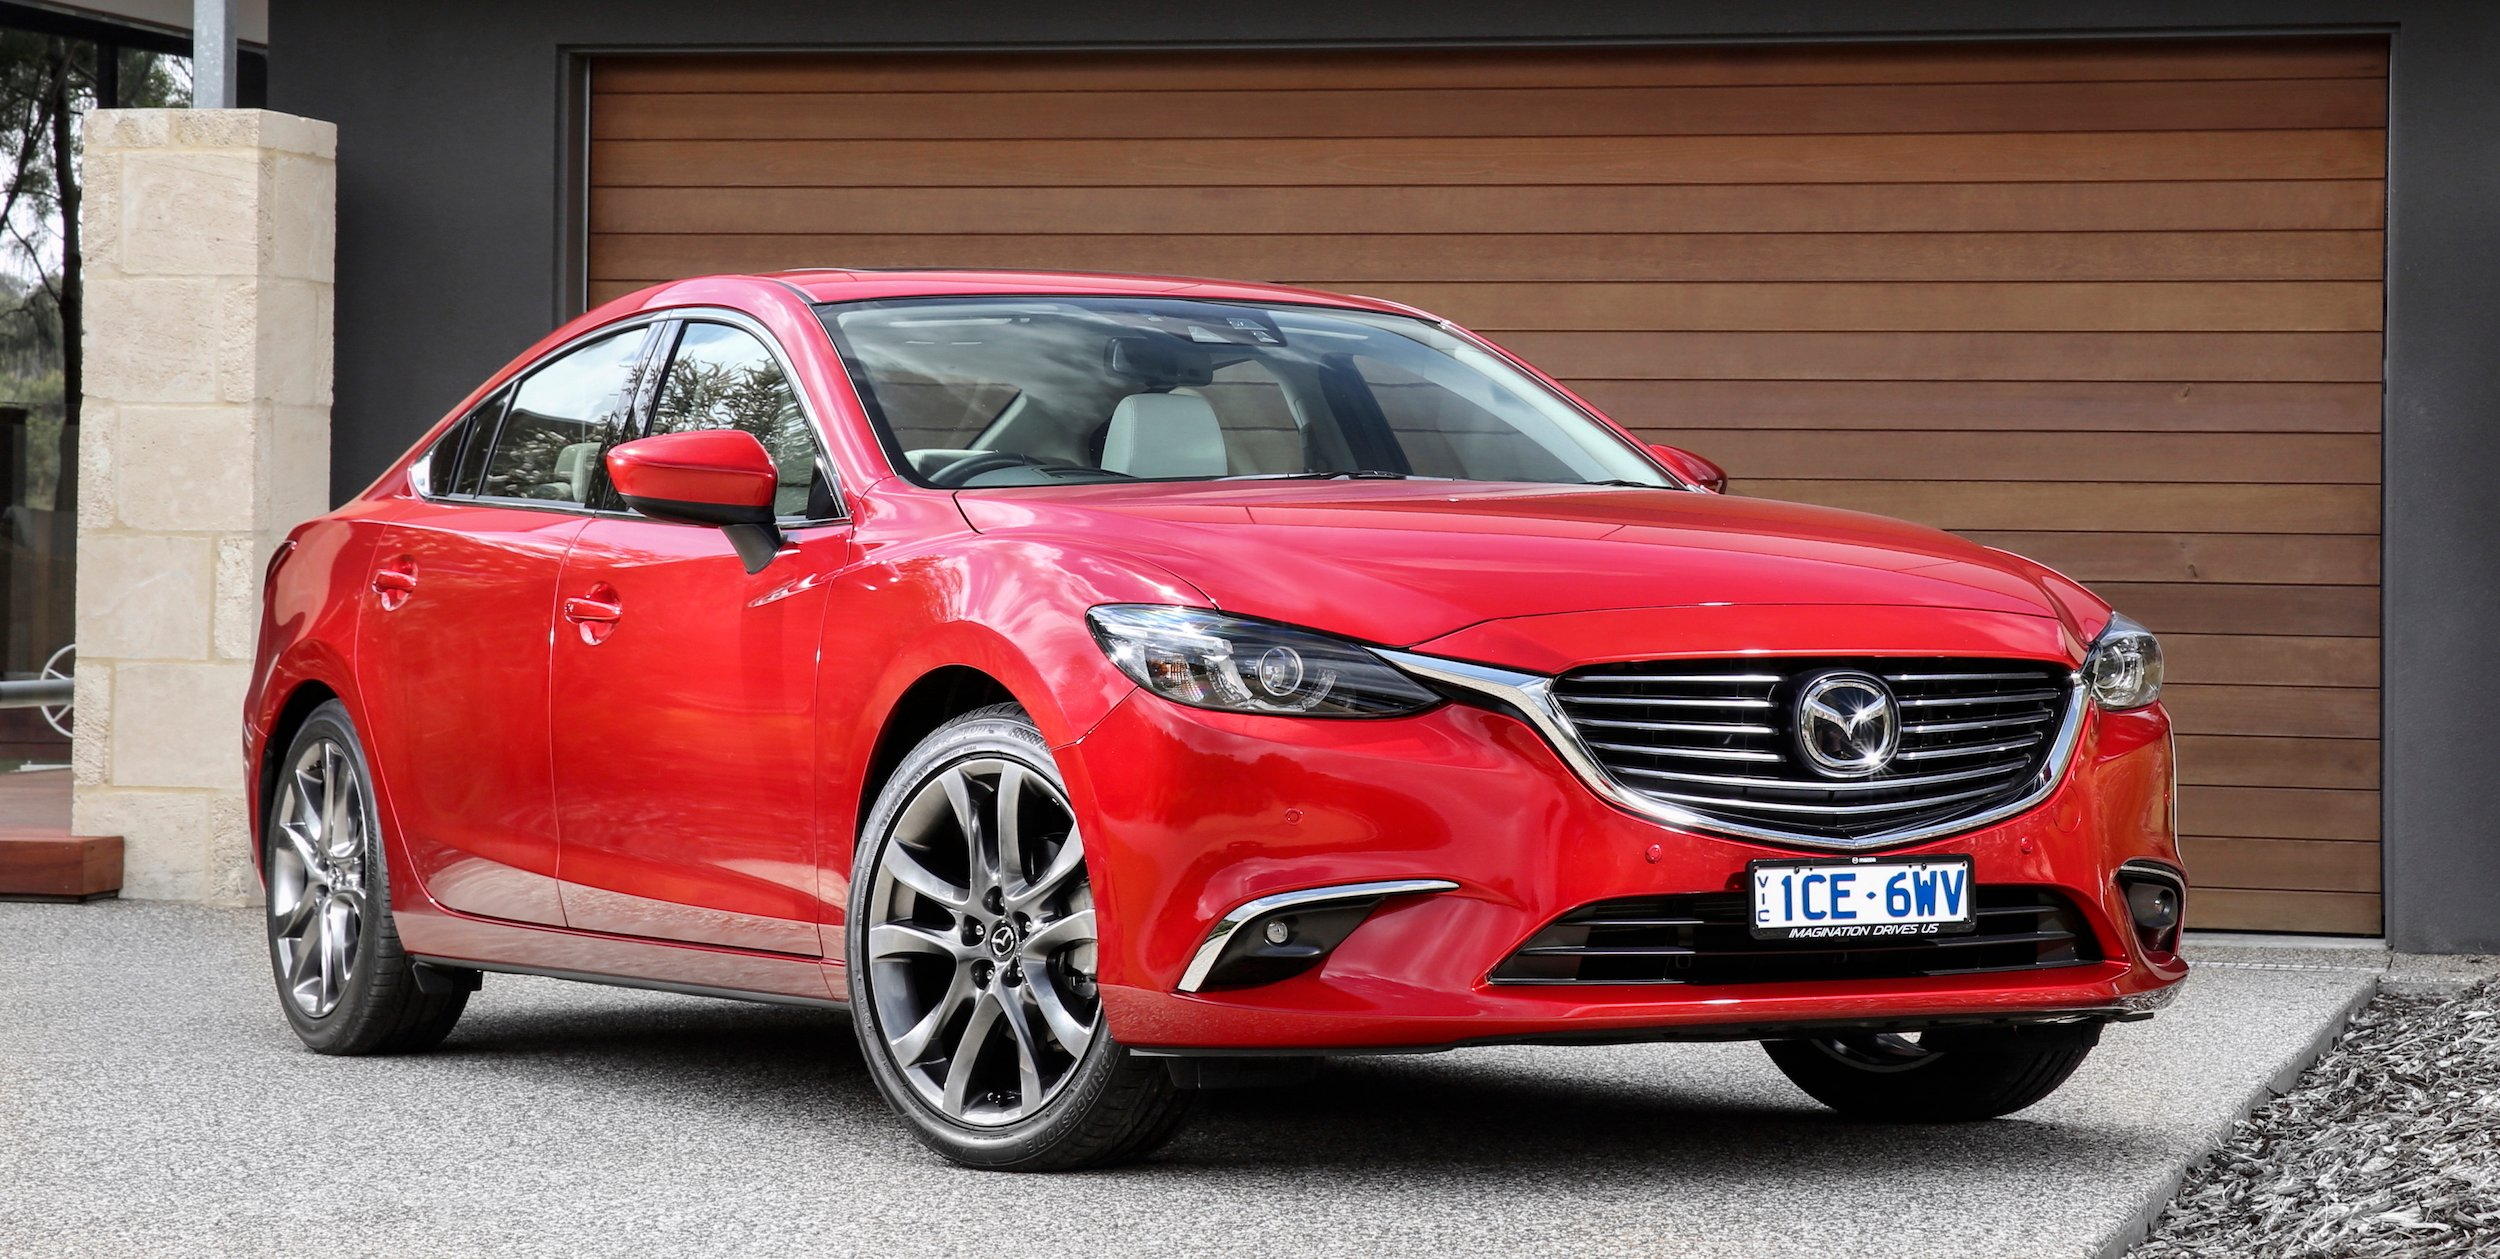 2015 mazda 6 pricing and specifications photos caradvice. Black Bedroom Furniture Sets. Home Design Ideas